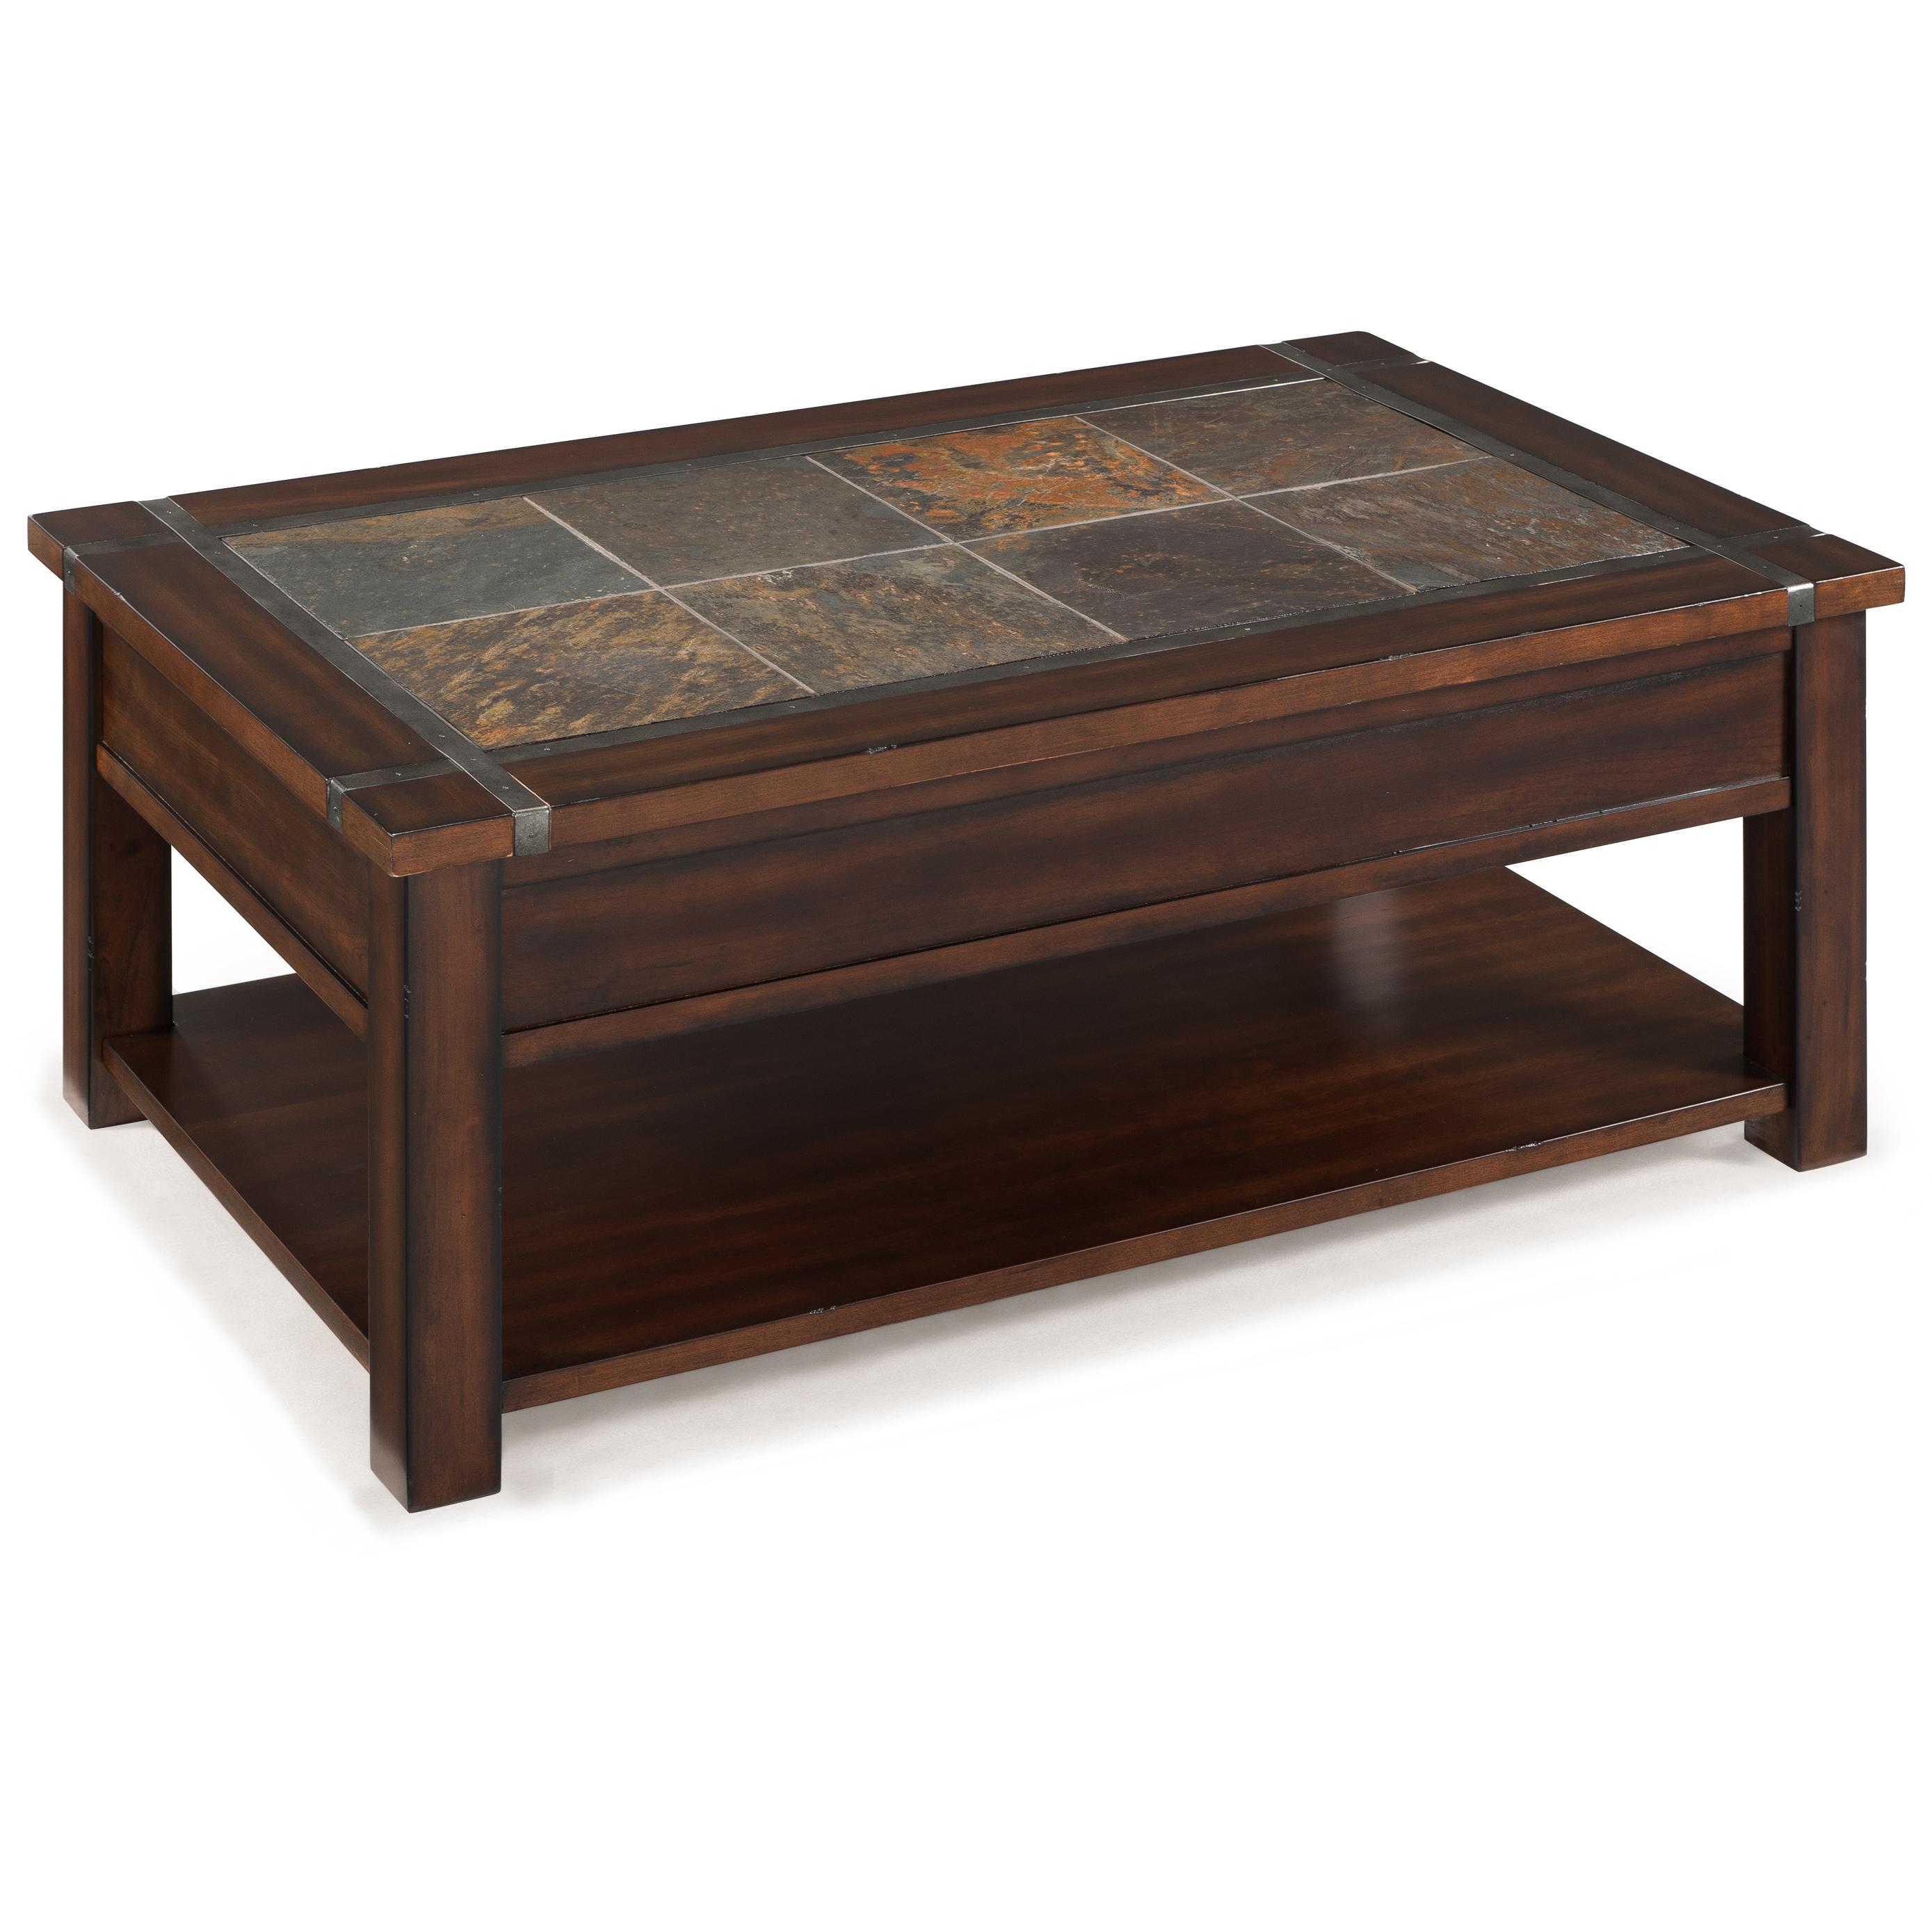 Magnussen Home Roanoke T2615 50 Rectangular Lift Top Cocktail Table With Casters And Shelf